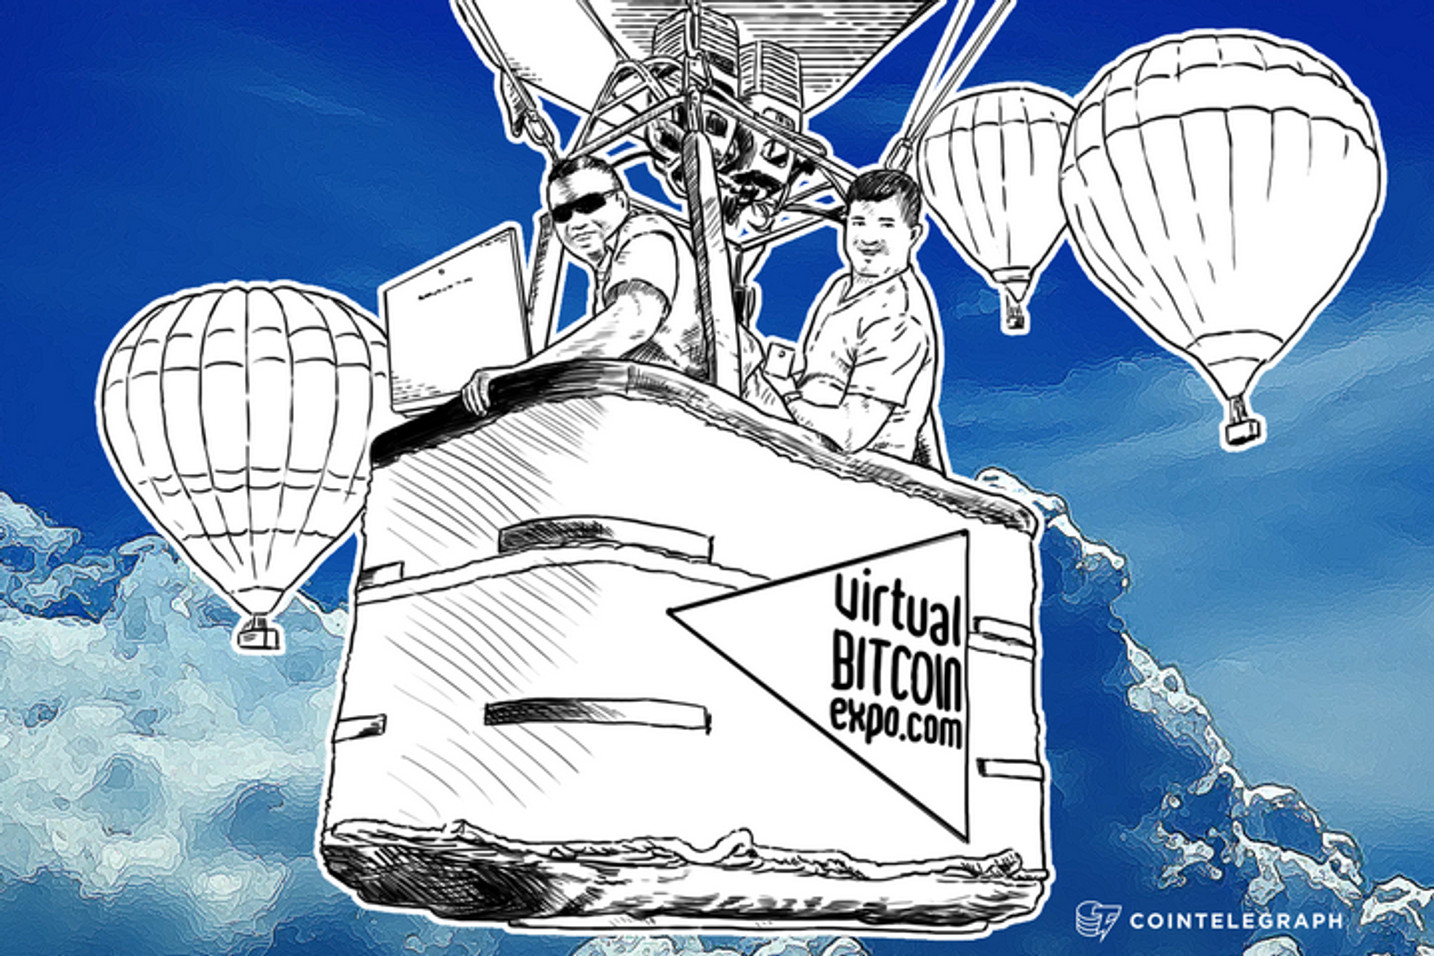 Bitcoin Virtual Expo 2015: The Revolution Will Not Be Centralized